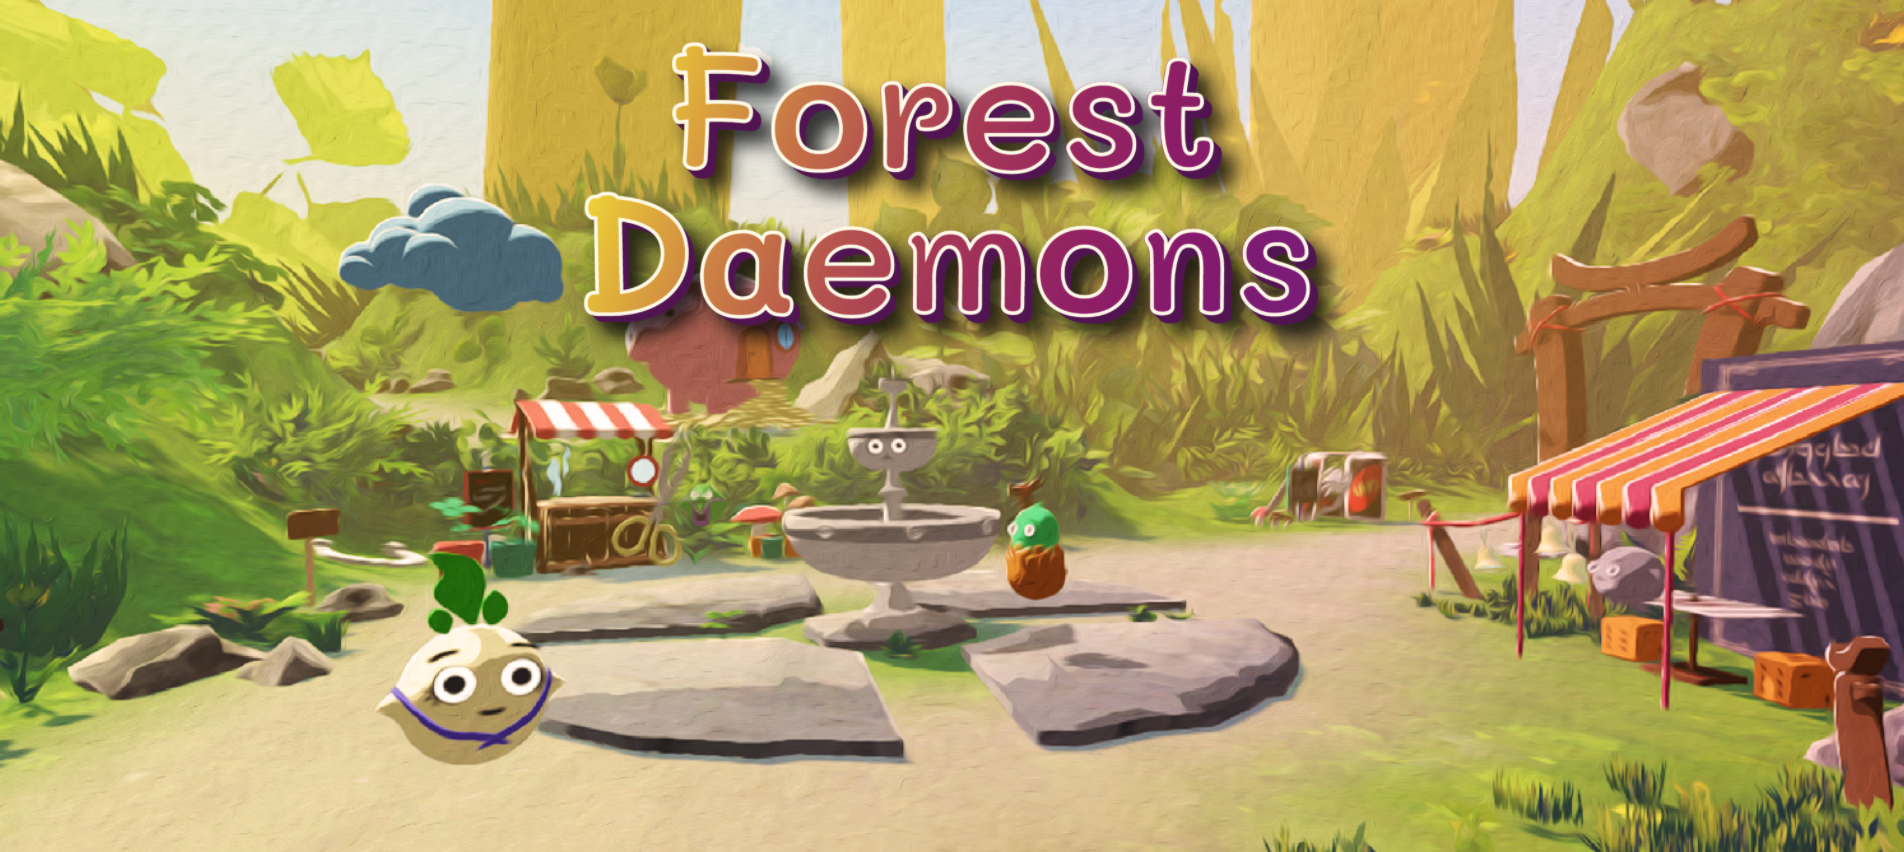 A screenshot of one of Daria's student projects, which she collaborated on with Alexandra. 'Forest Daemons' is the title, and it shows a small forest scene with cute floating characters.